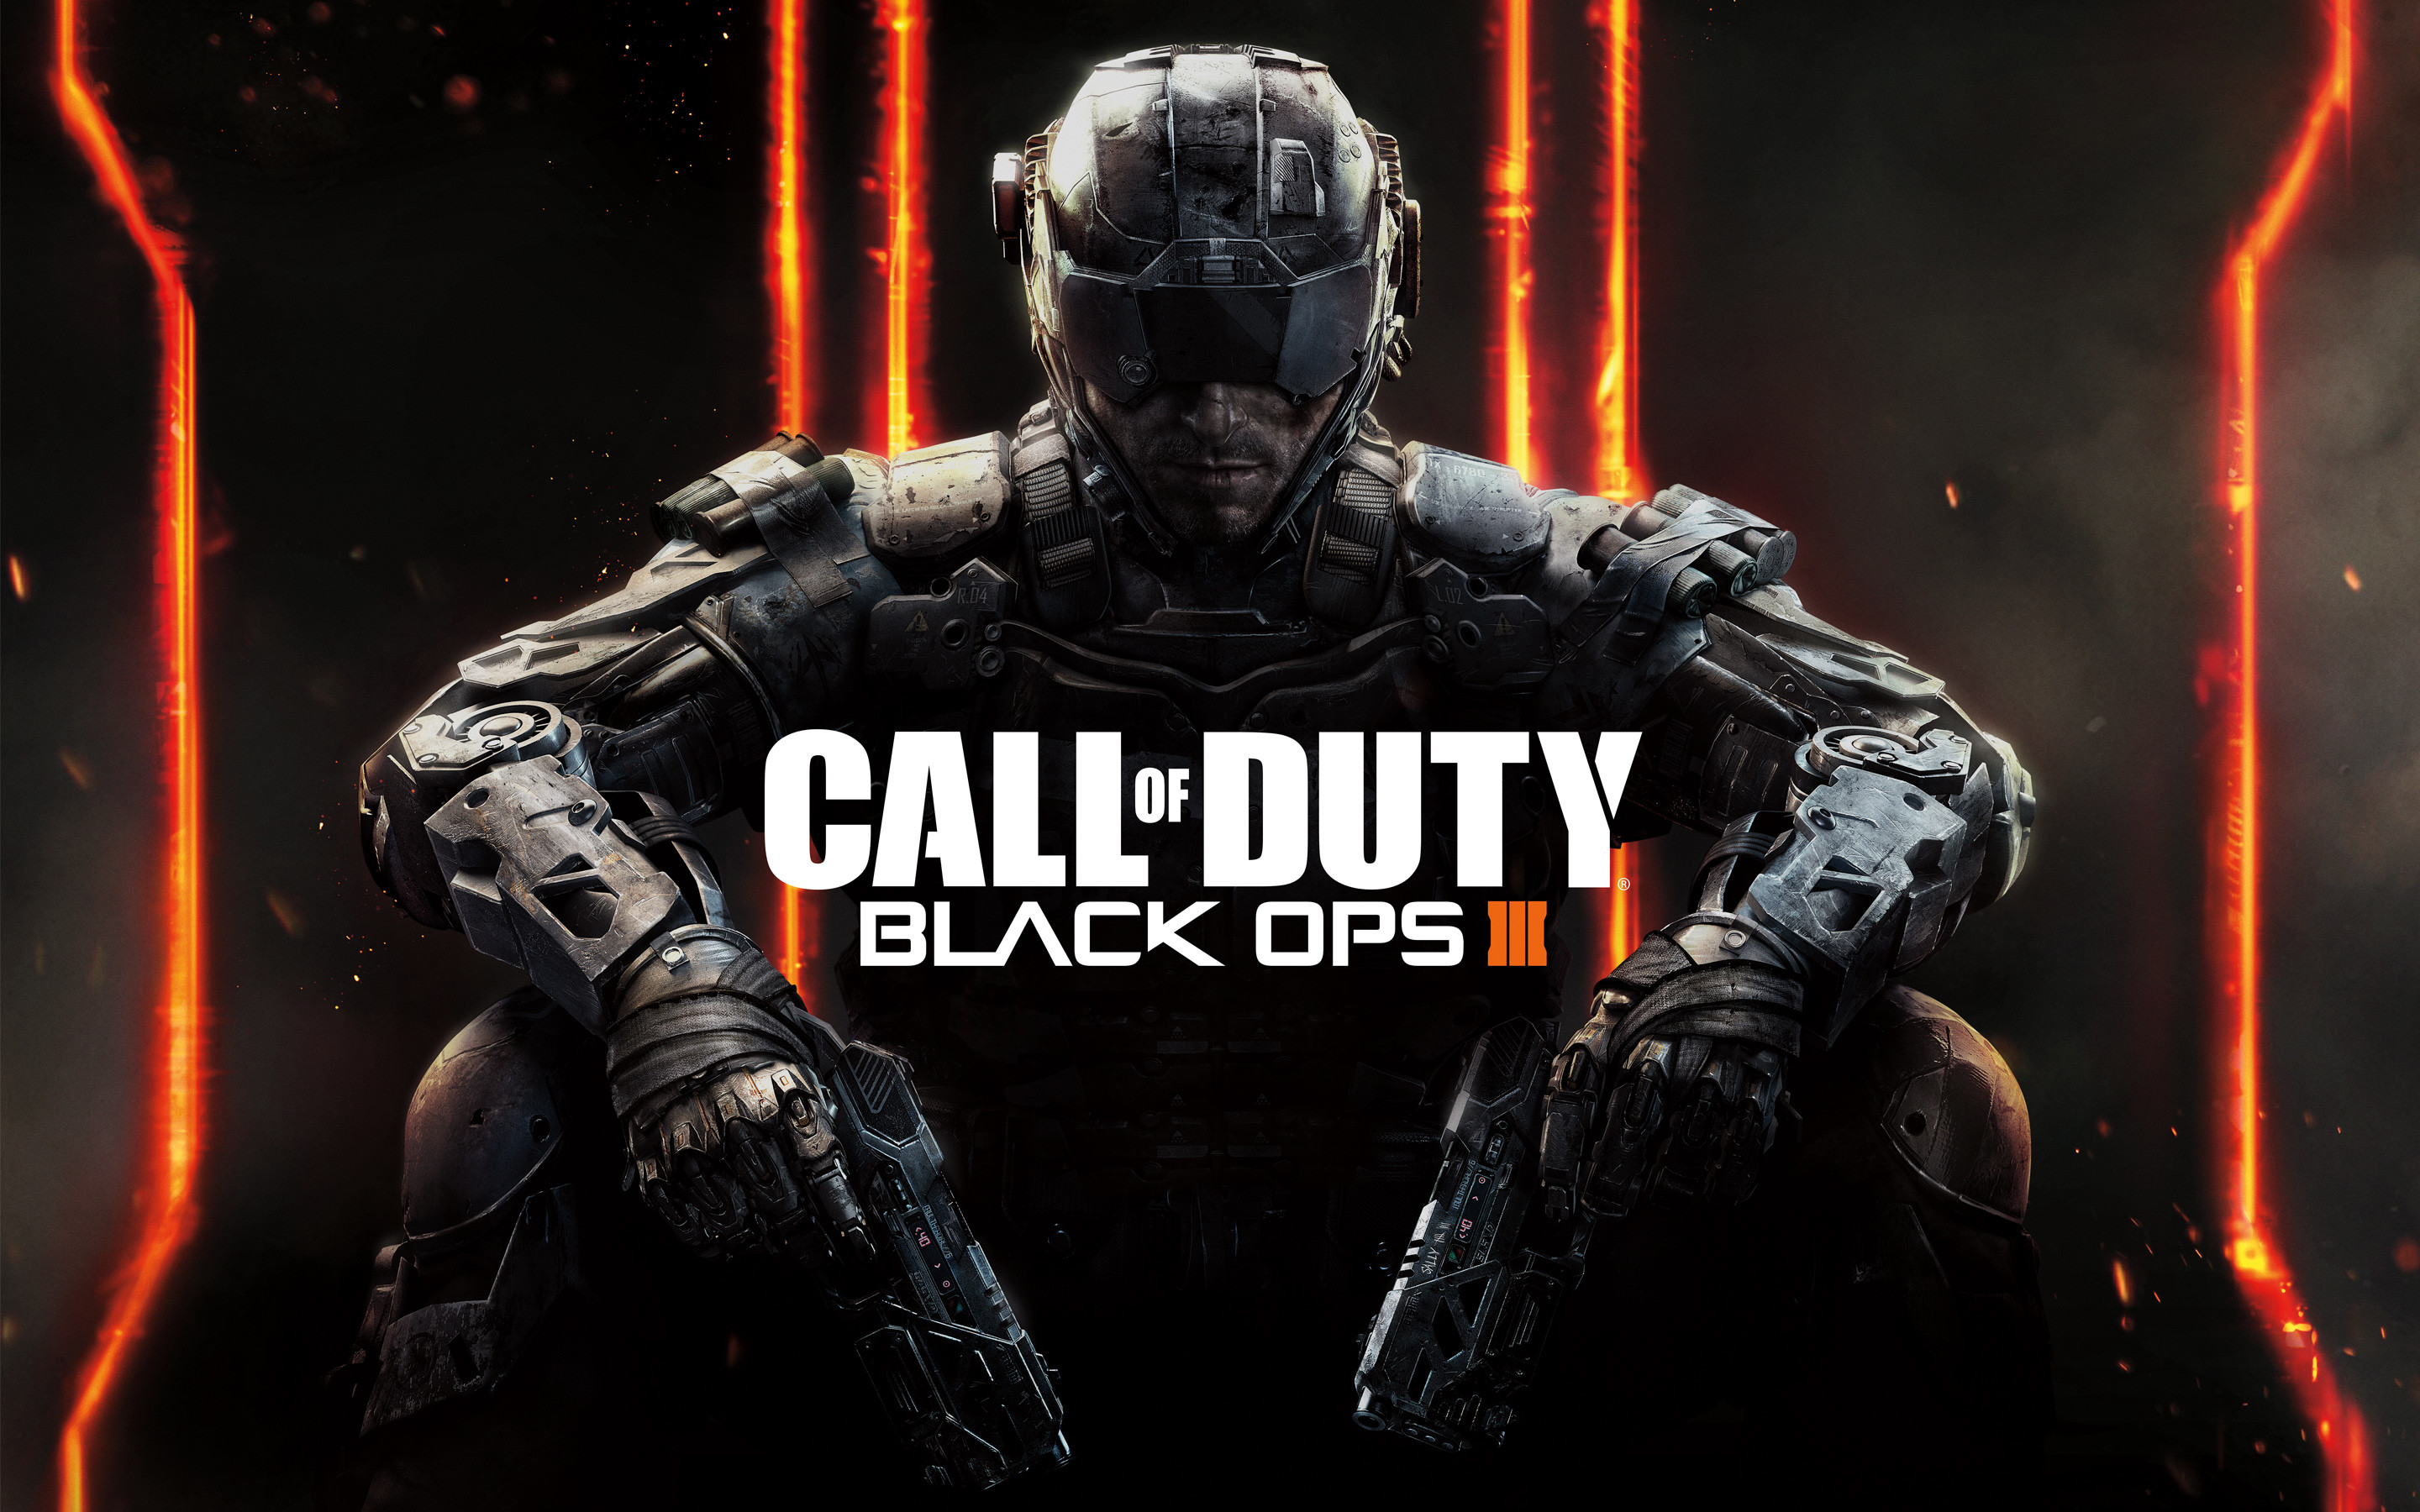 2880x1800 70 Call of Duty: Black Ops III HD Wallpapers | Backgrounds - Wallpaper Abyss